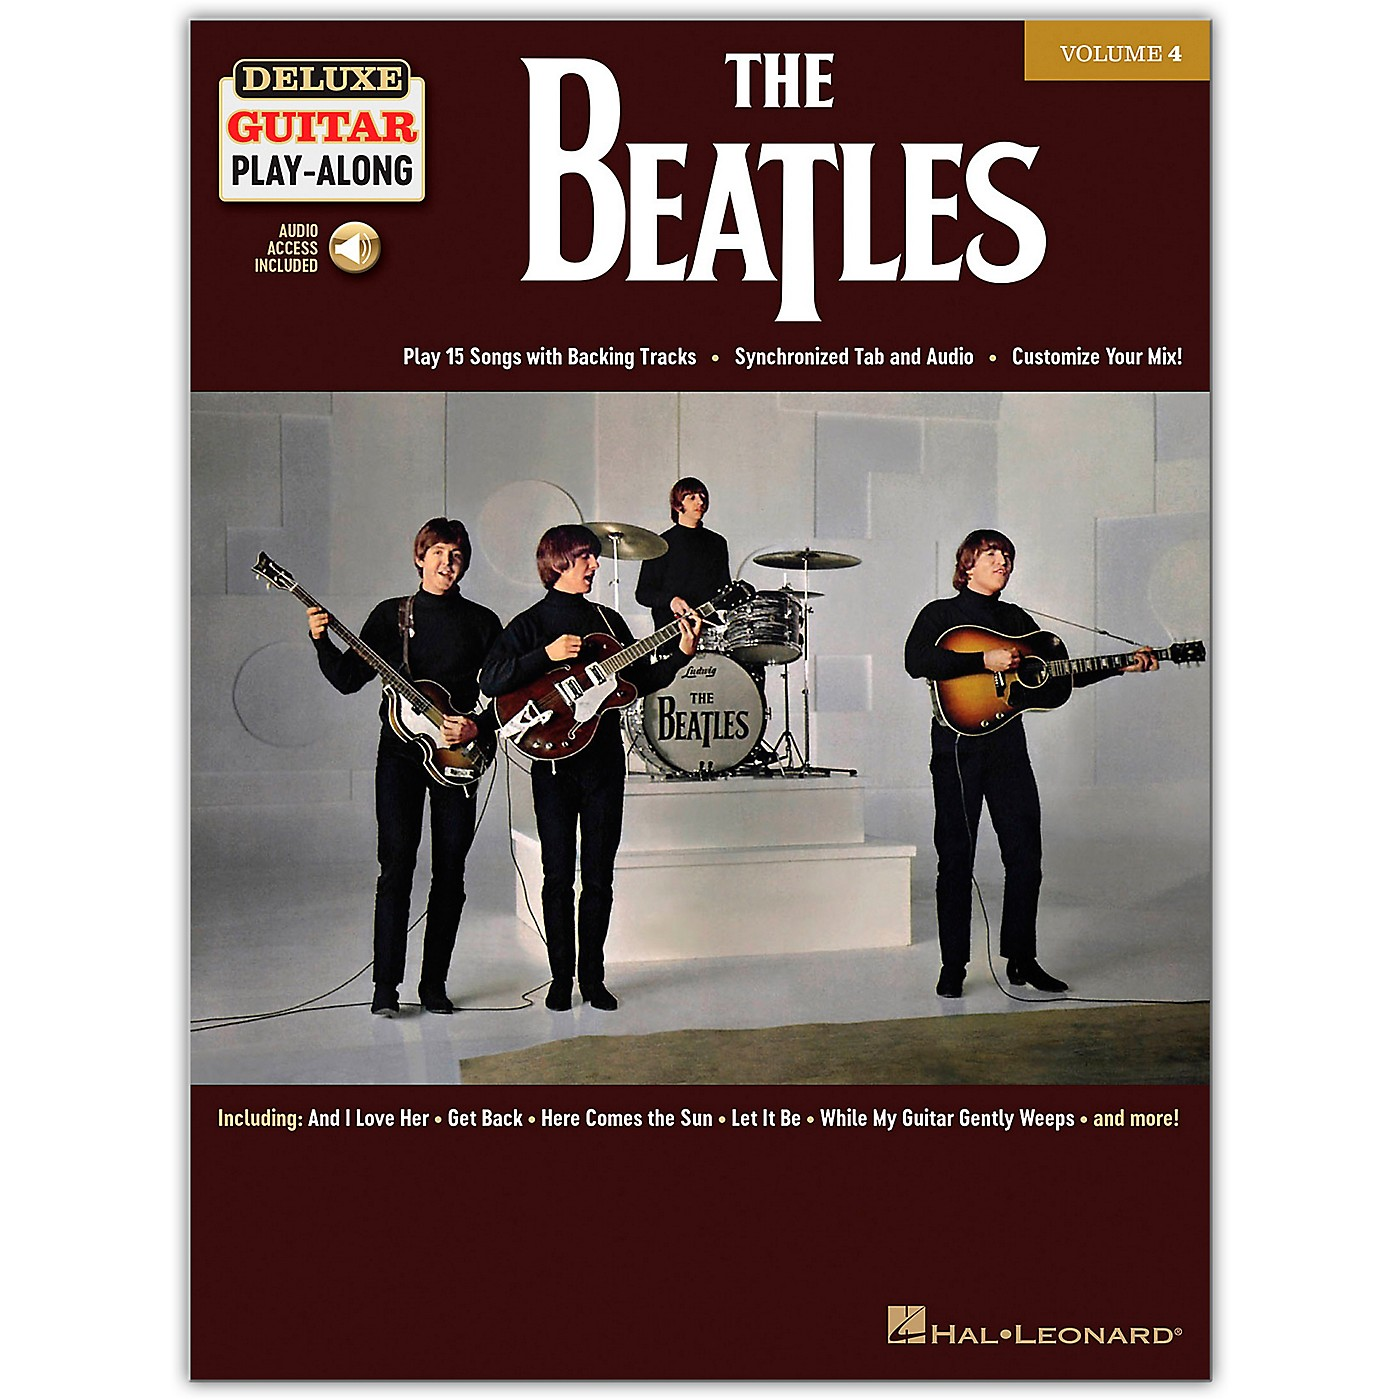 Hal Leonard The Beatles Deluxe Guitar Play-Along Volume 4 Book/Audio Online thumbnail